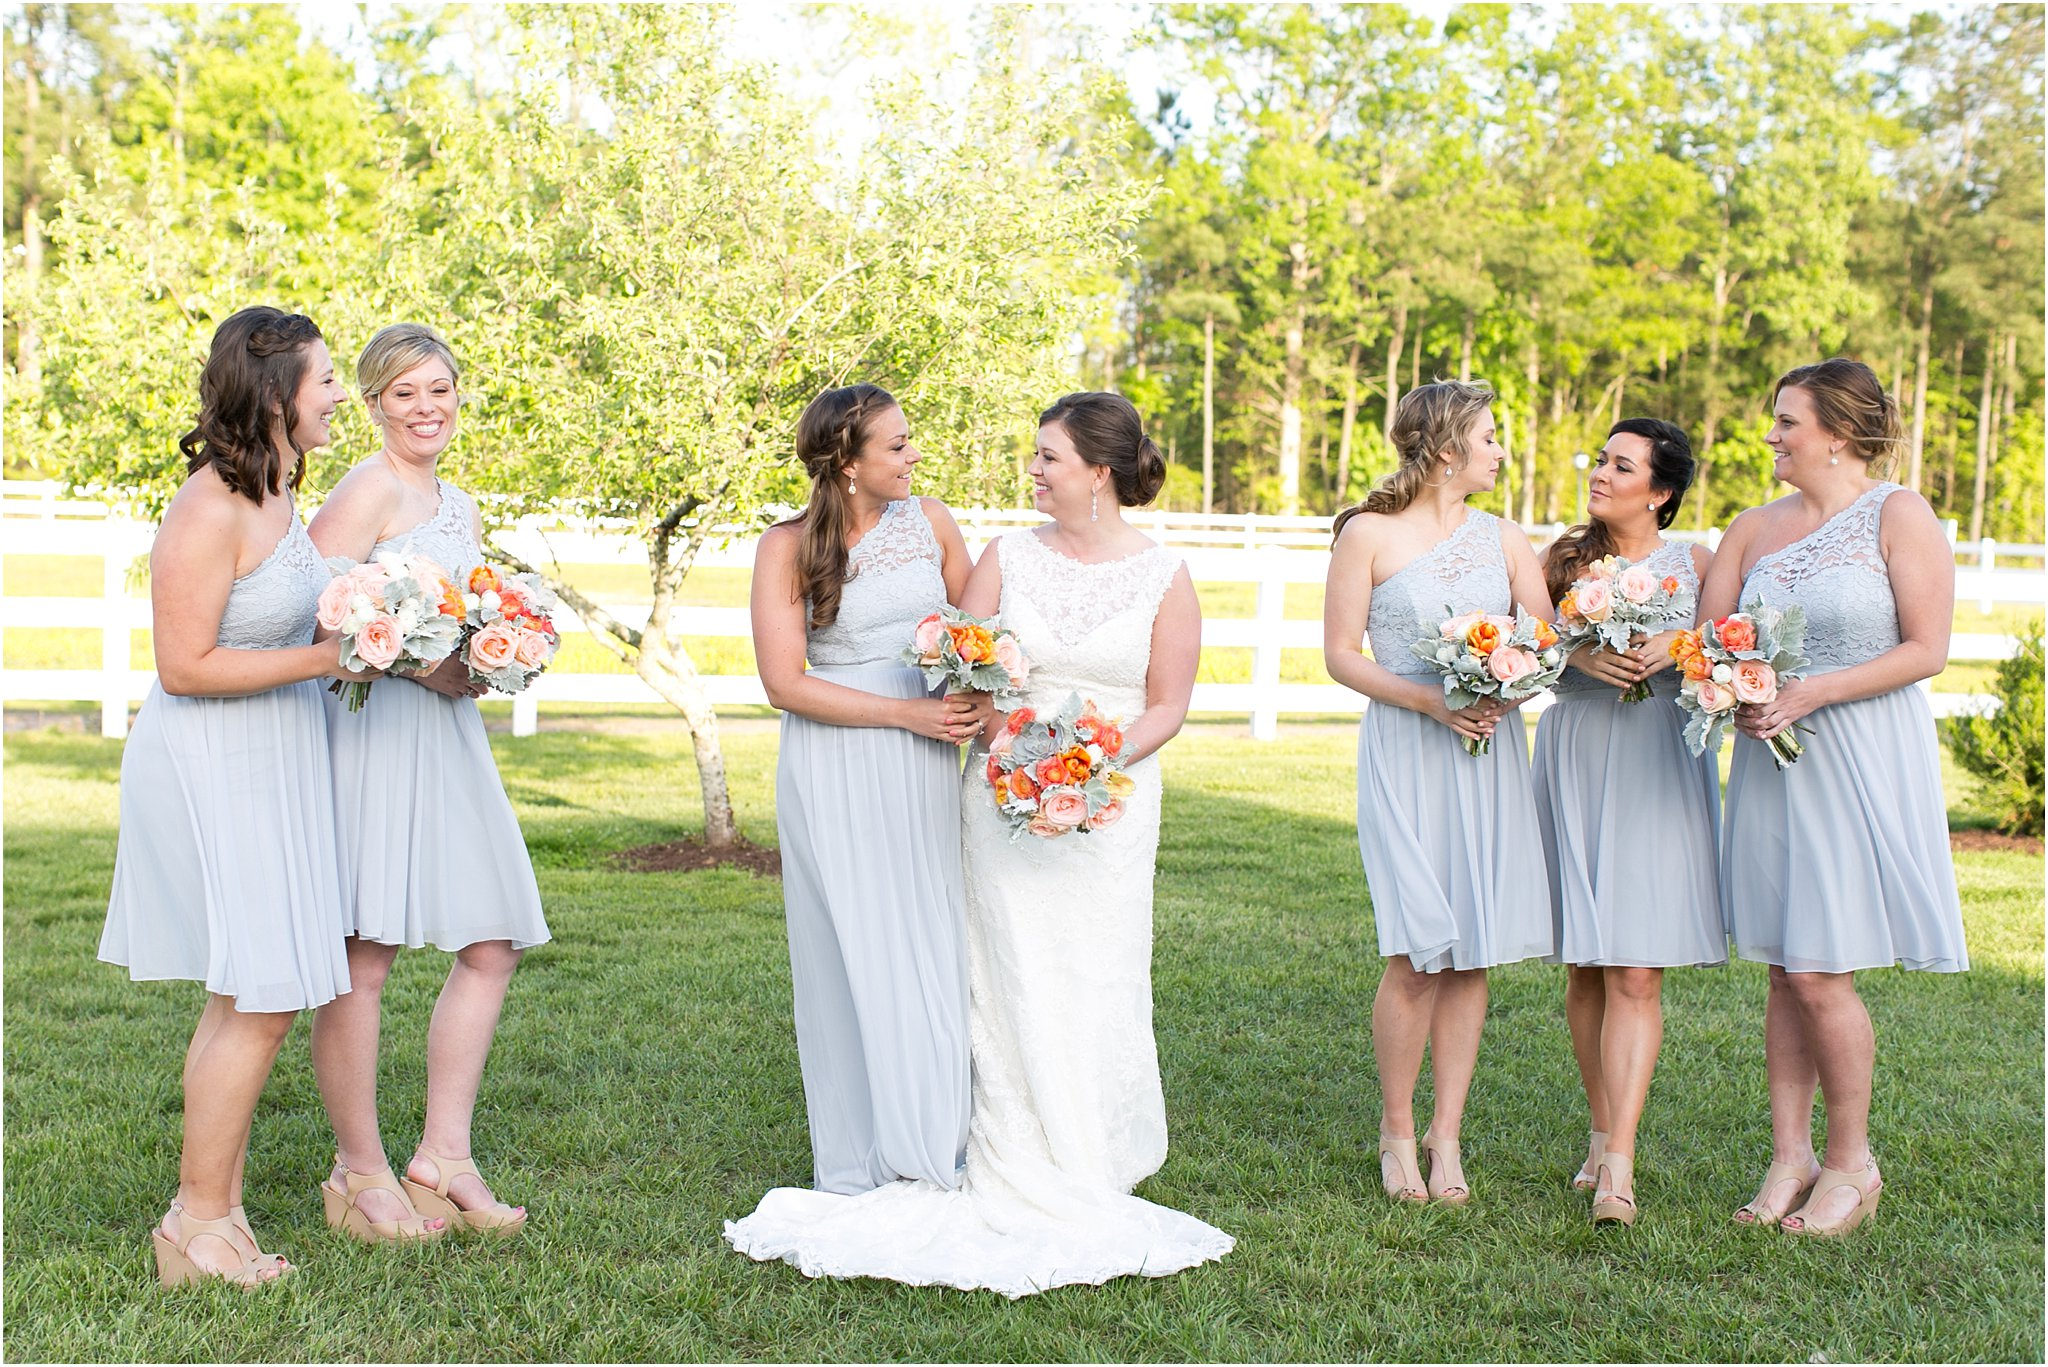 jessica_ryan_photography_holly_ridge_manor_wedding_roost_flowers_jamie_leigh_events_dhalia_edwards_candid_vibrant_wedding_colors_1315